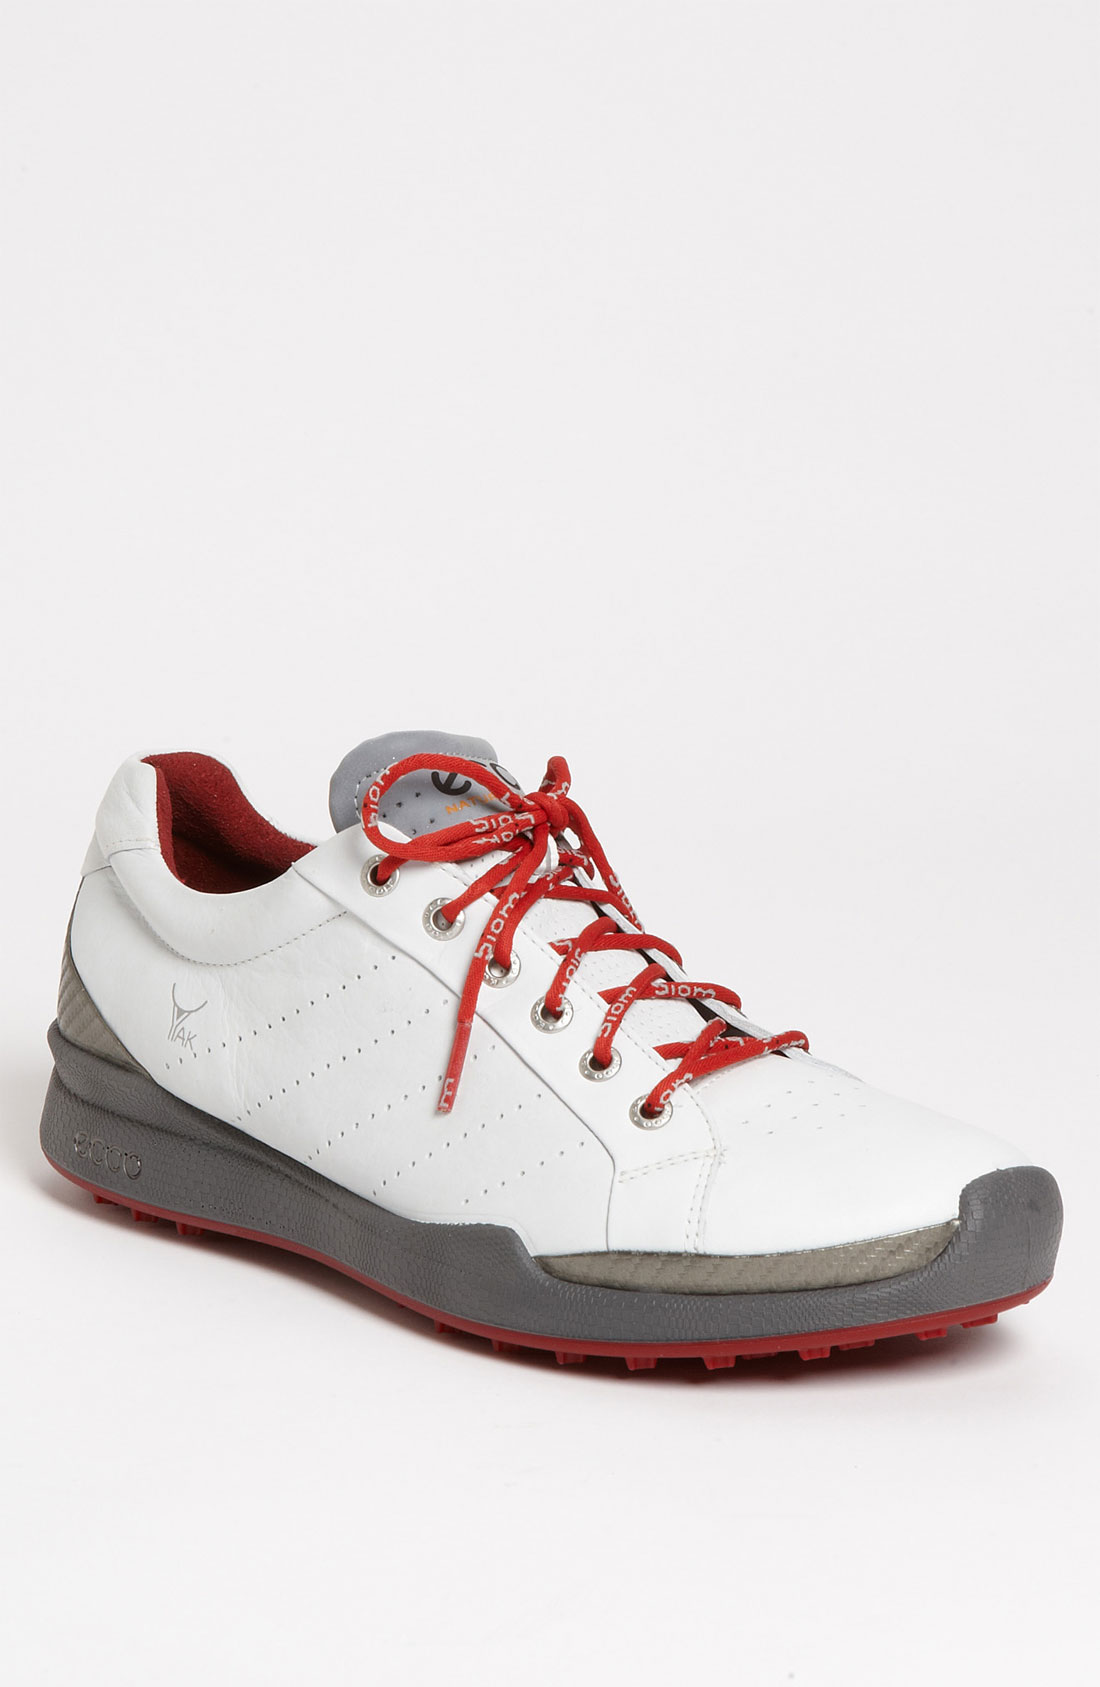 Bally Golf Shoes Sale